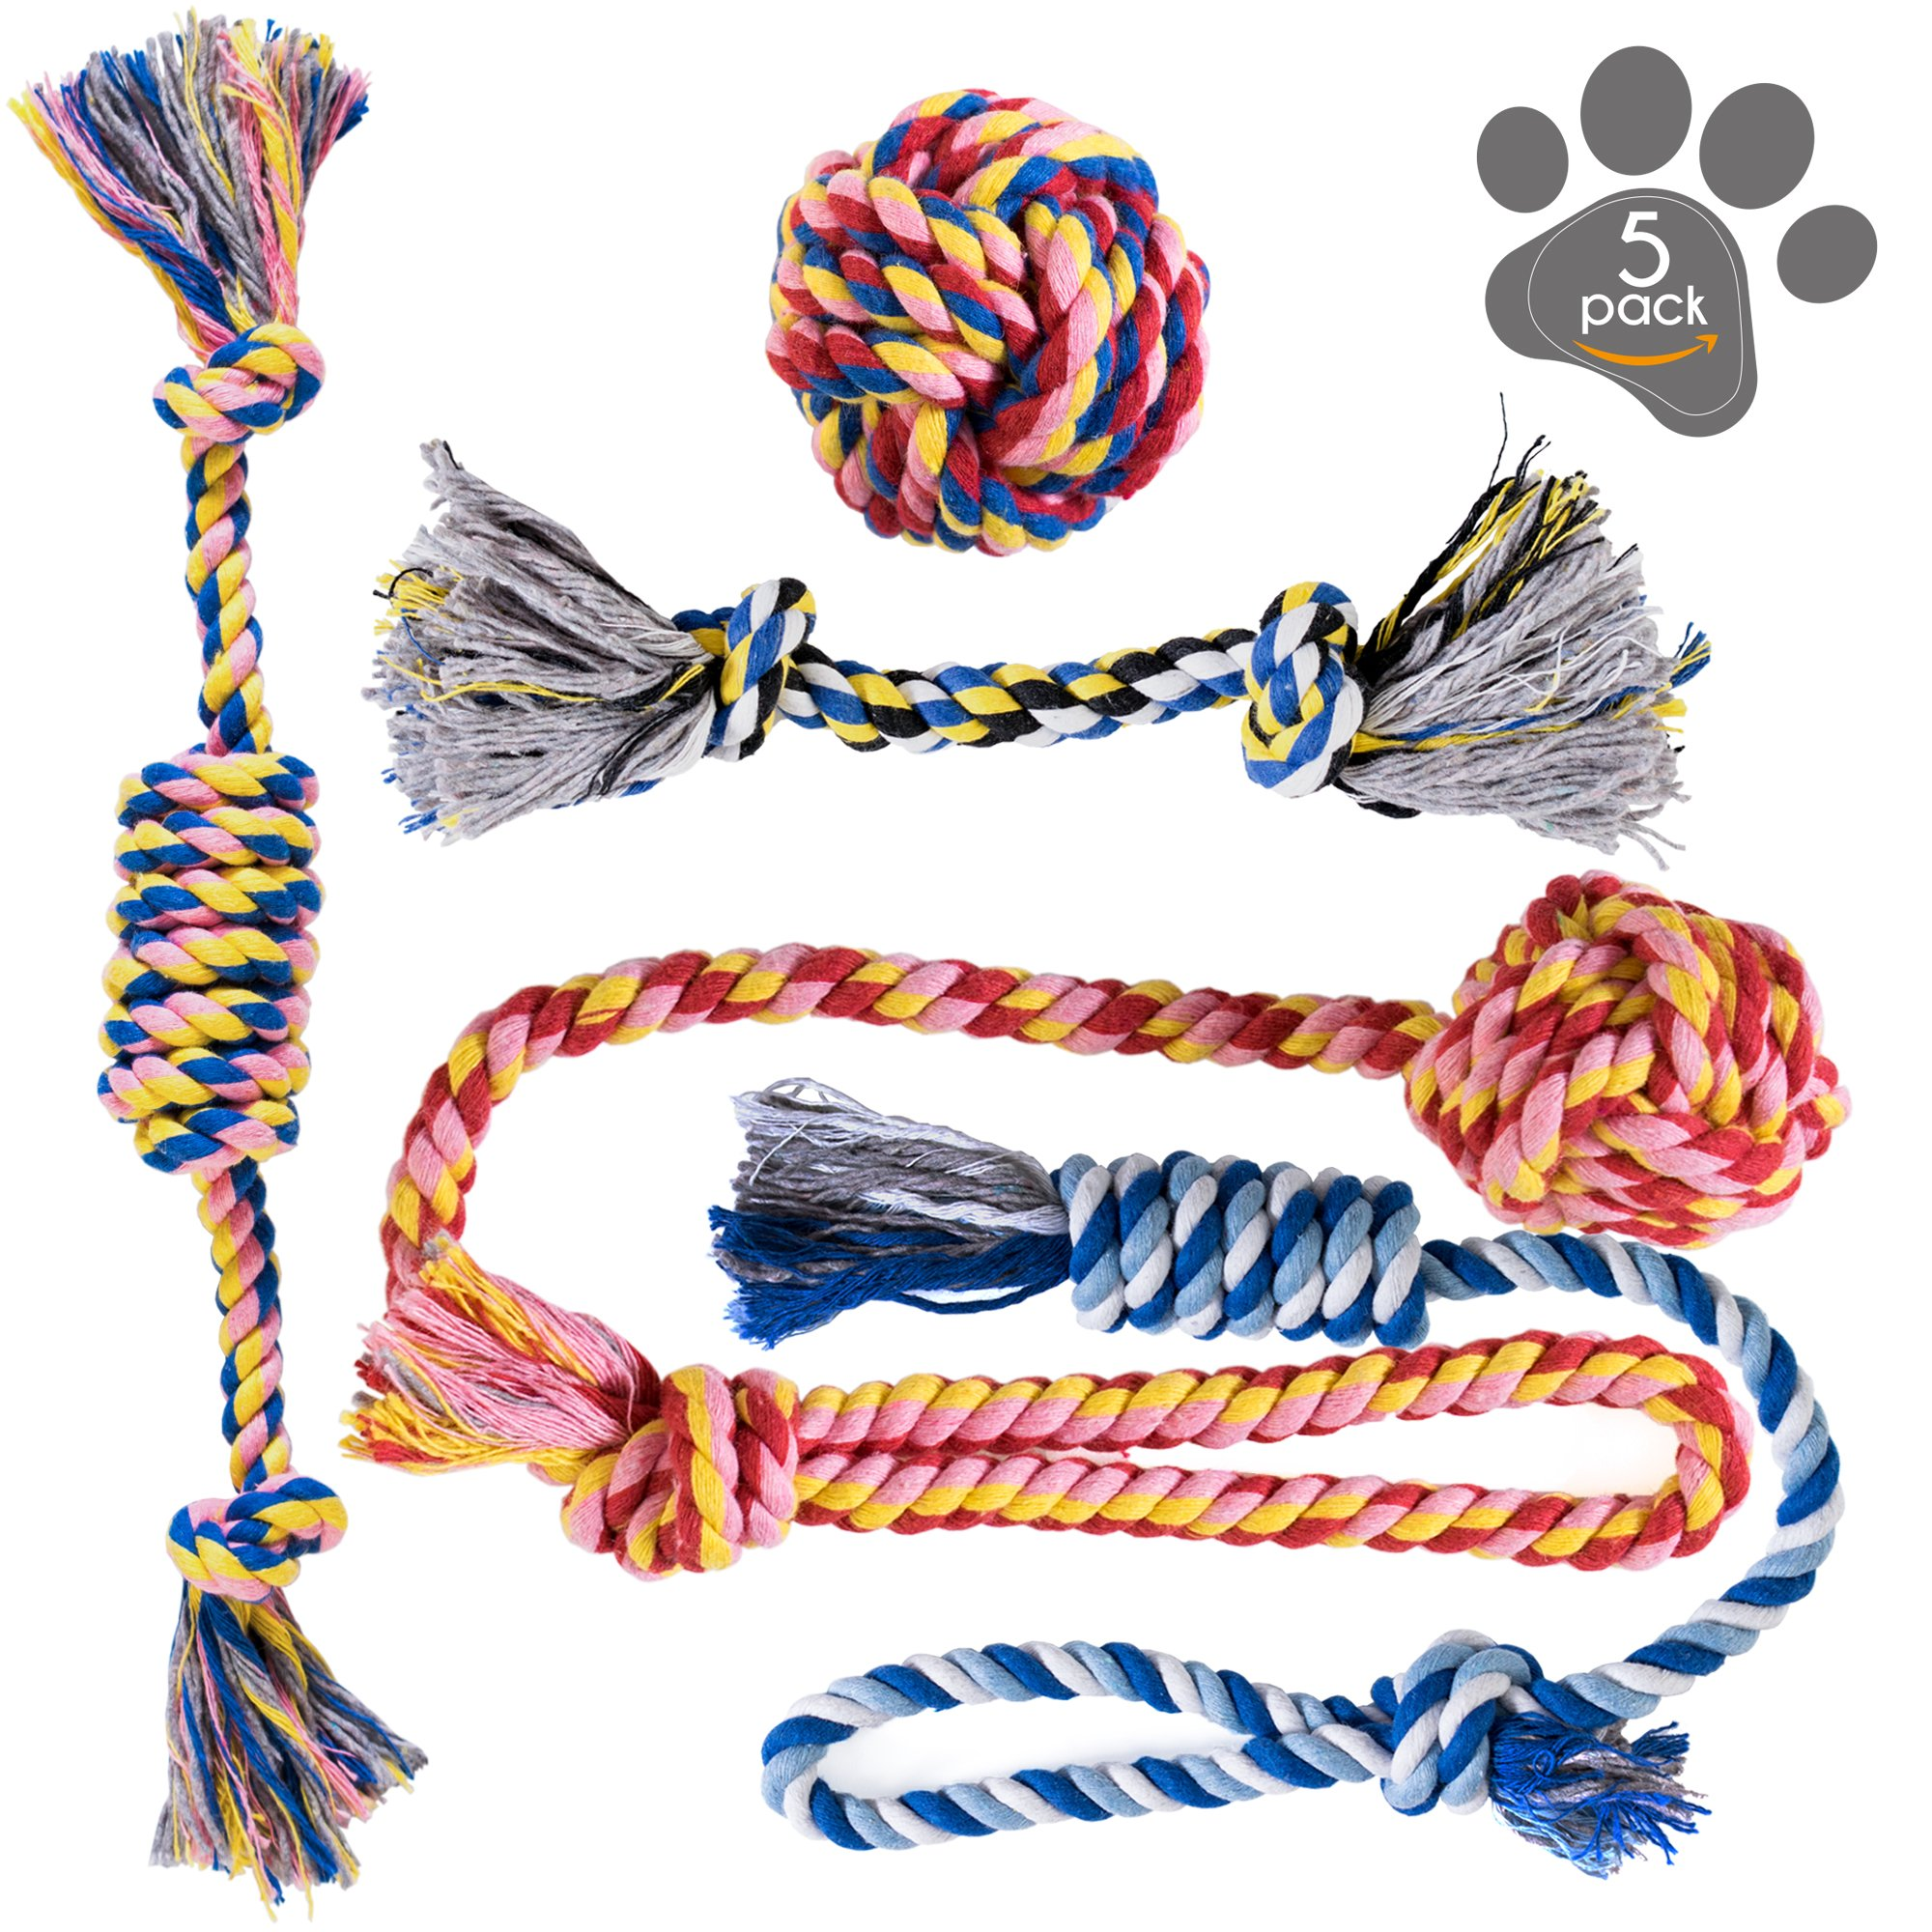 Dog Chew Toys - Puppy Teething Toys - Dog Toy Set - Rope Dog Toy - Puppy Toys - Medium Small Dog Toys - Chew Toys Dogs - Dog Toy Pack - Washable Cotton Rope Dogs - Puppy Chew Toys